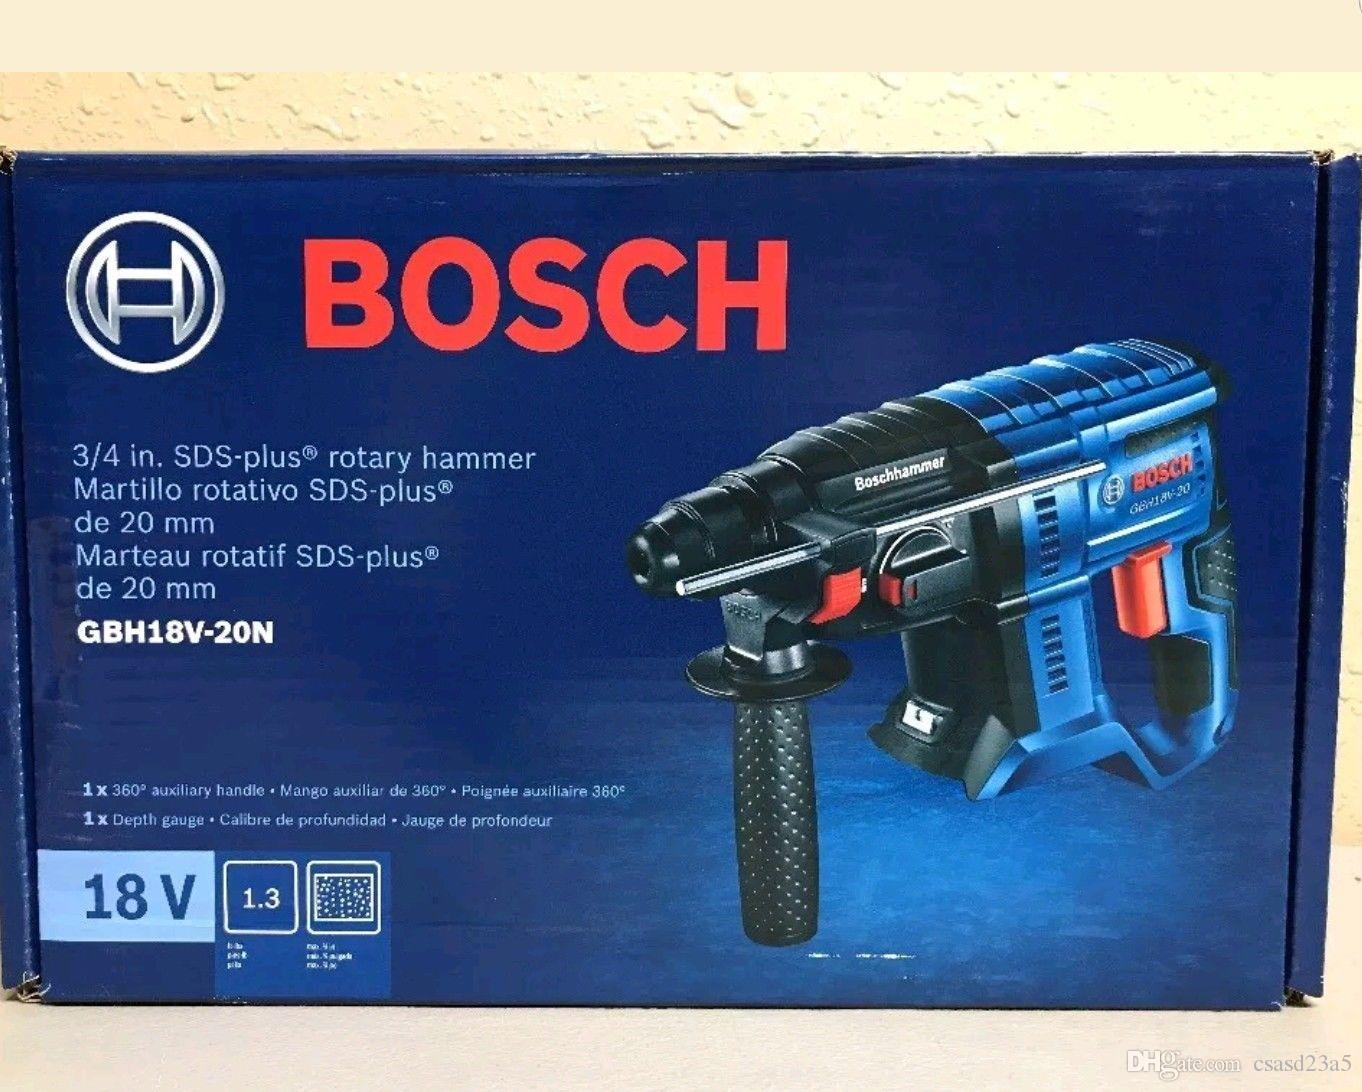 BOSCH GBH18V-20N - 18V 3/4 In. SDS-plus Rotary Hammer (Bare Tool) NUOVA Nave Libera